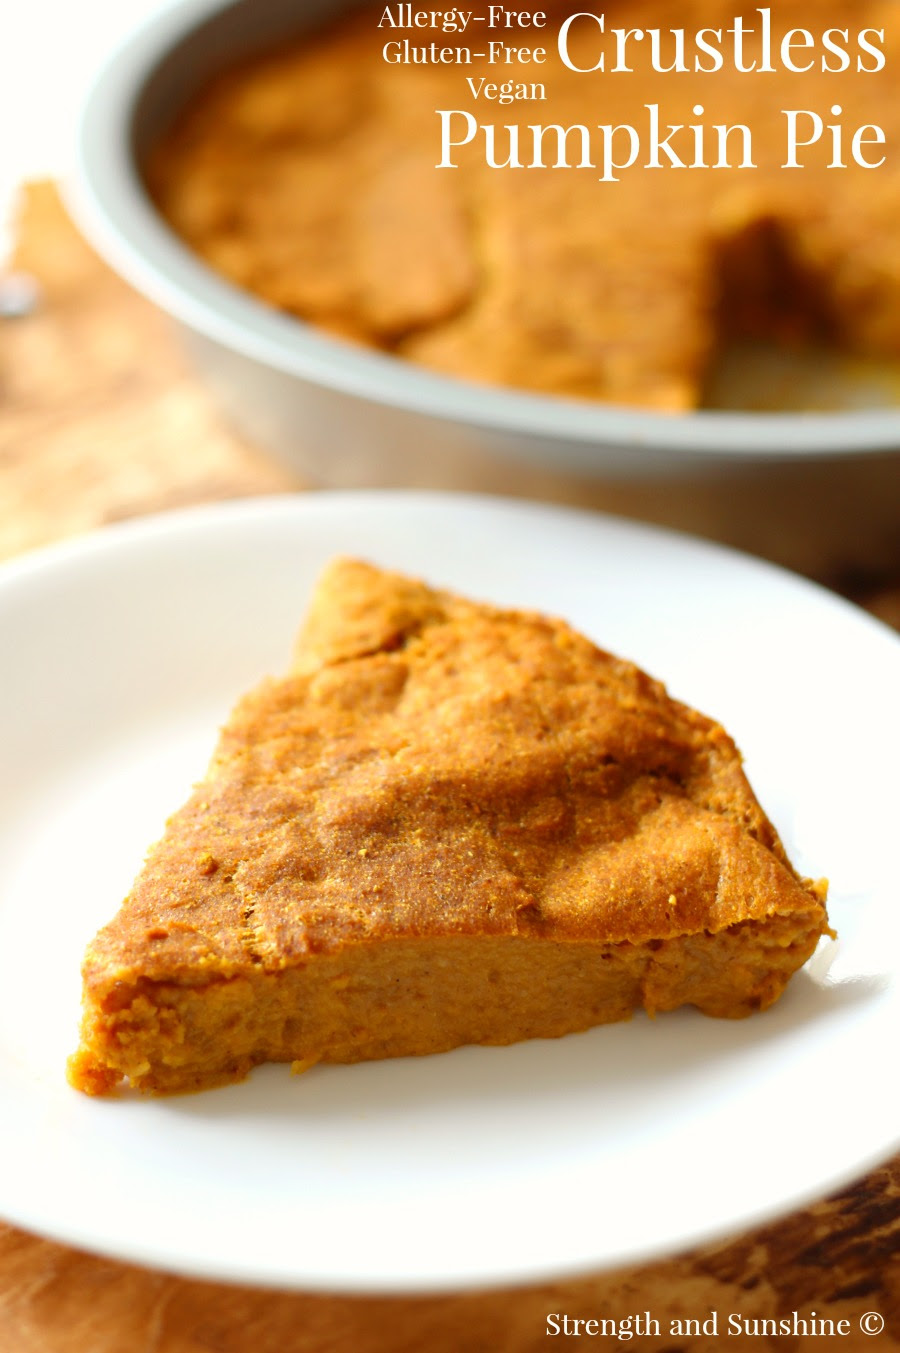 The healthiest, crustless Pumpkin Pie by Strength and Sunshine